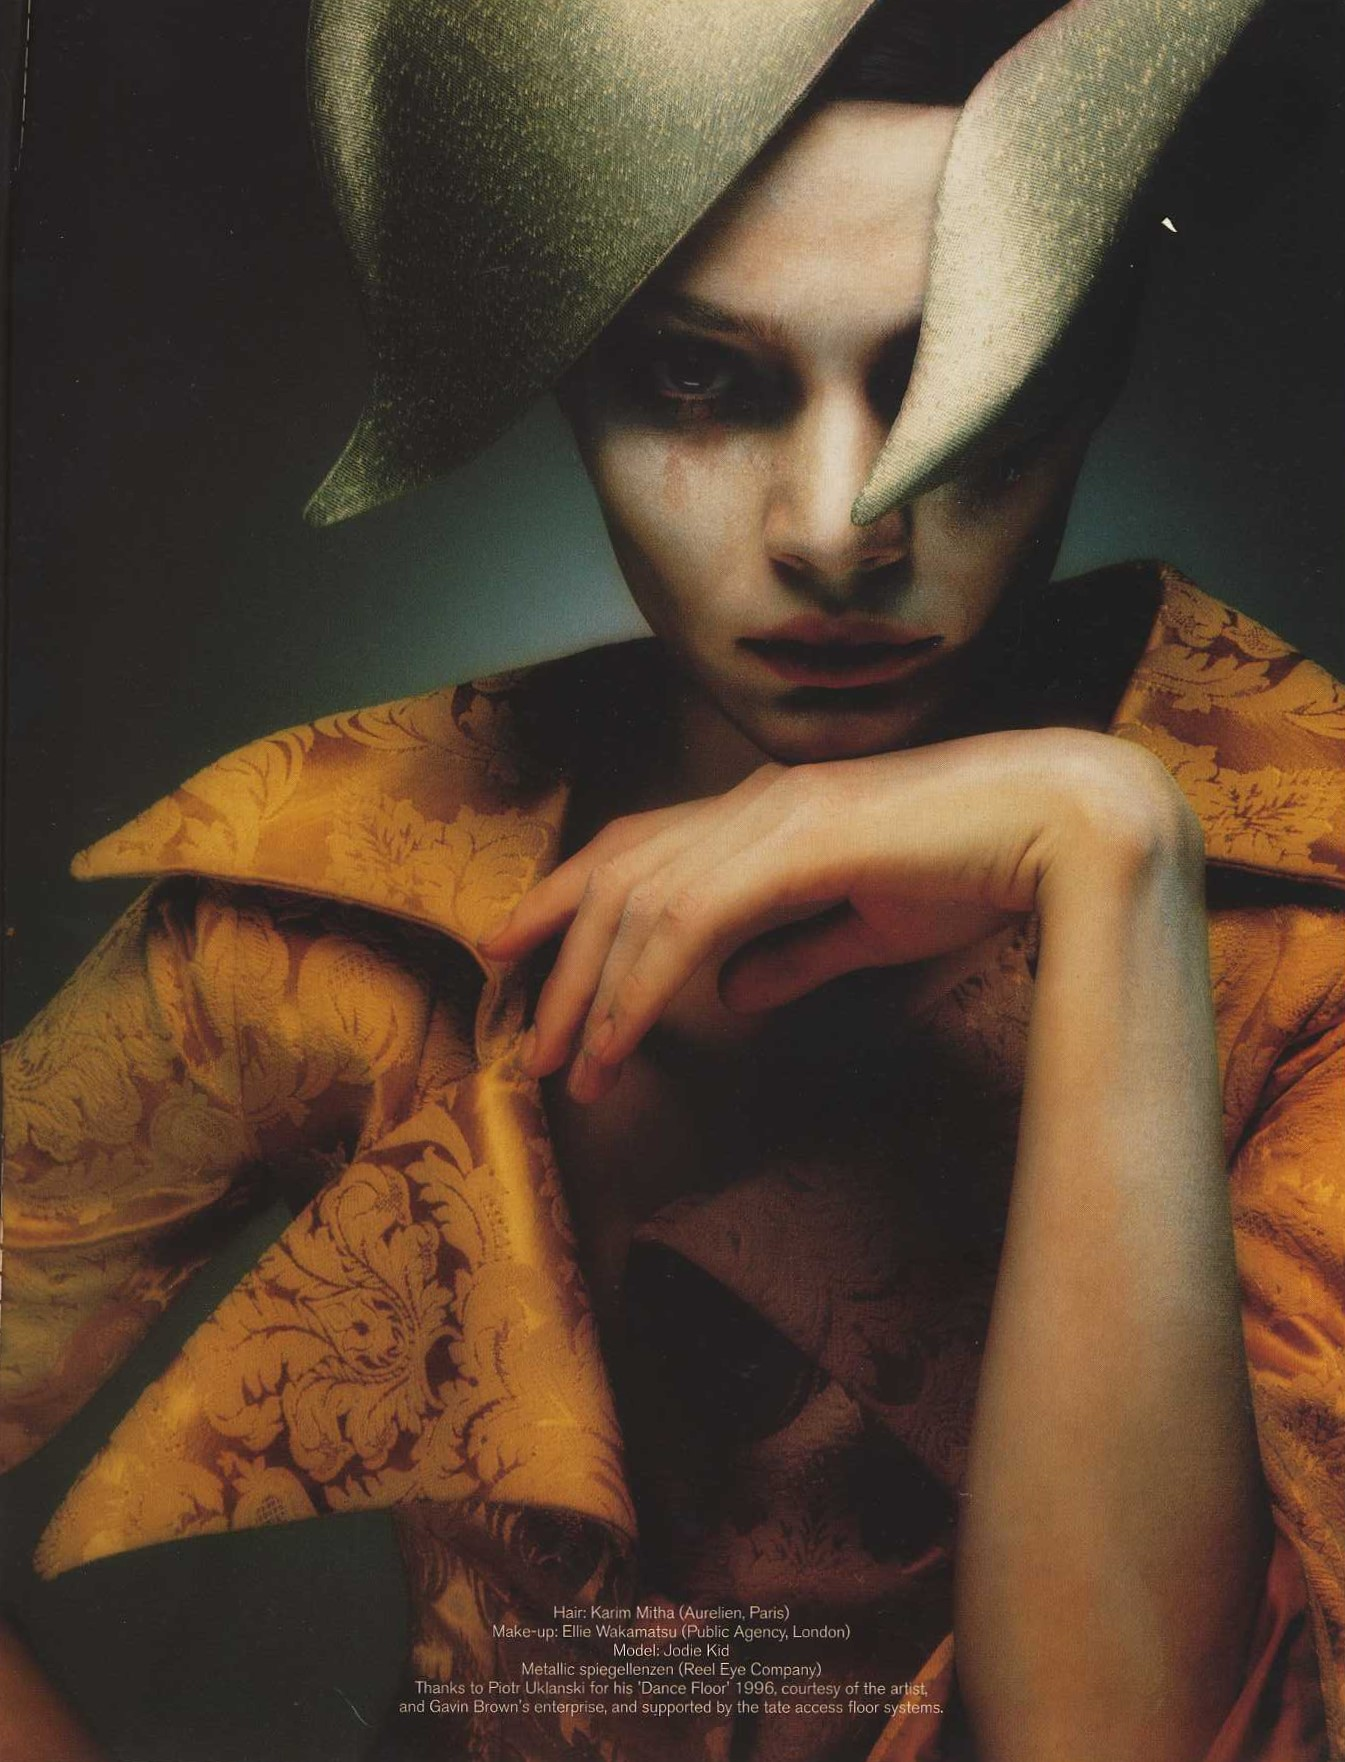 angloalien photography sean ellis styling isabella blow dutch 12 autumn 1997 5